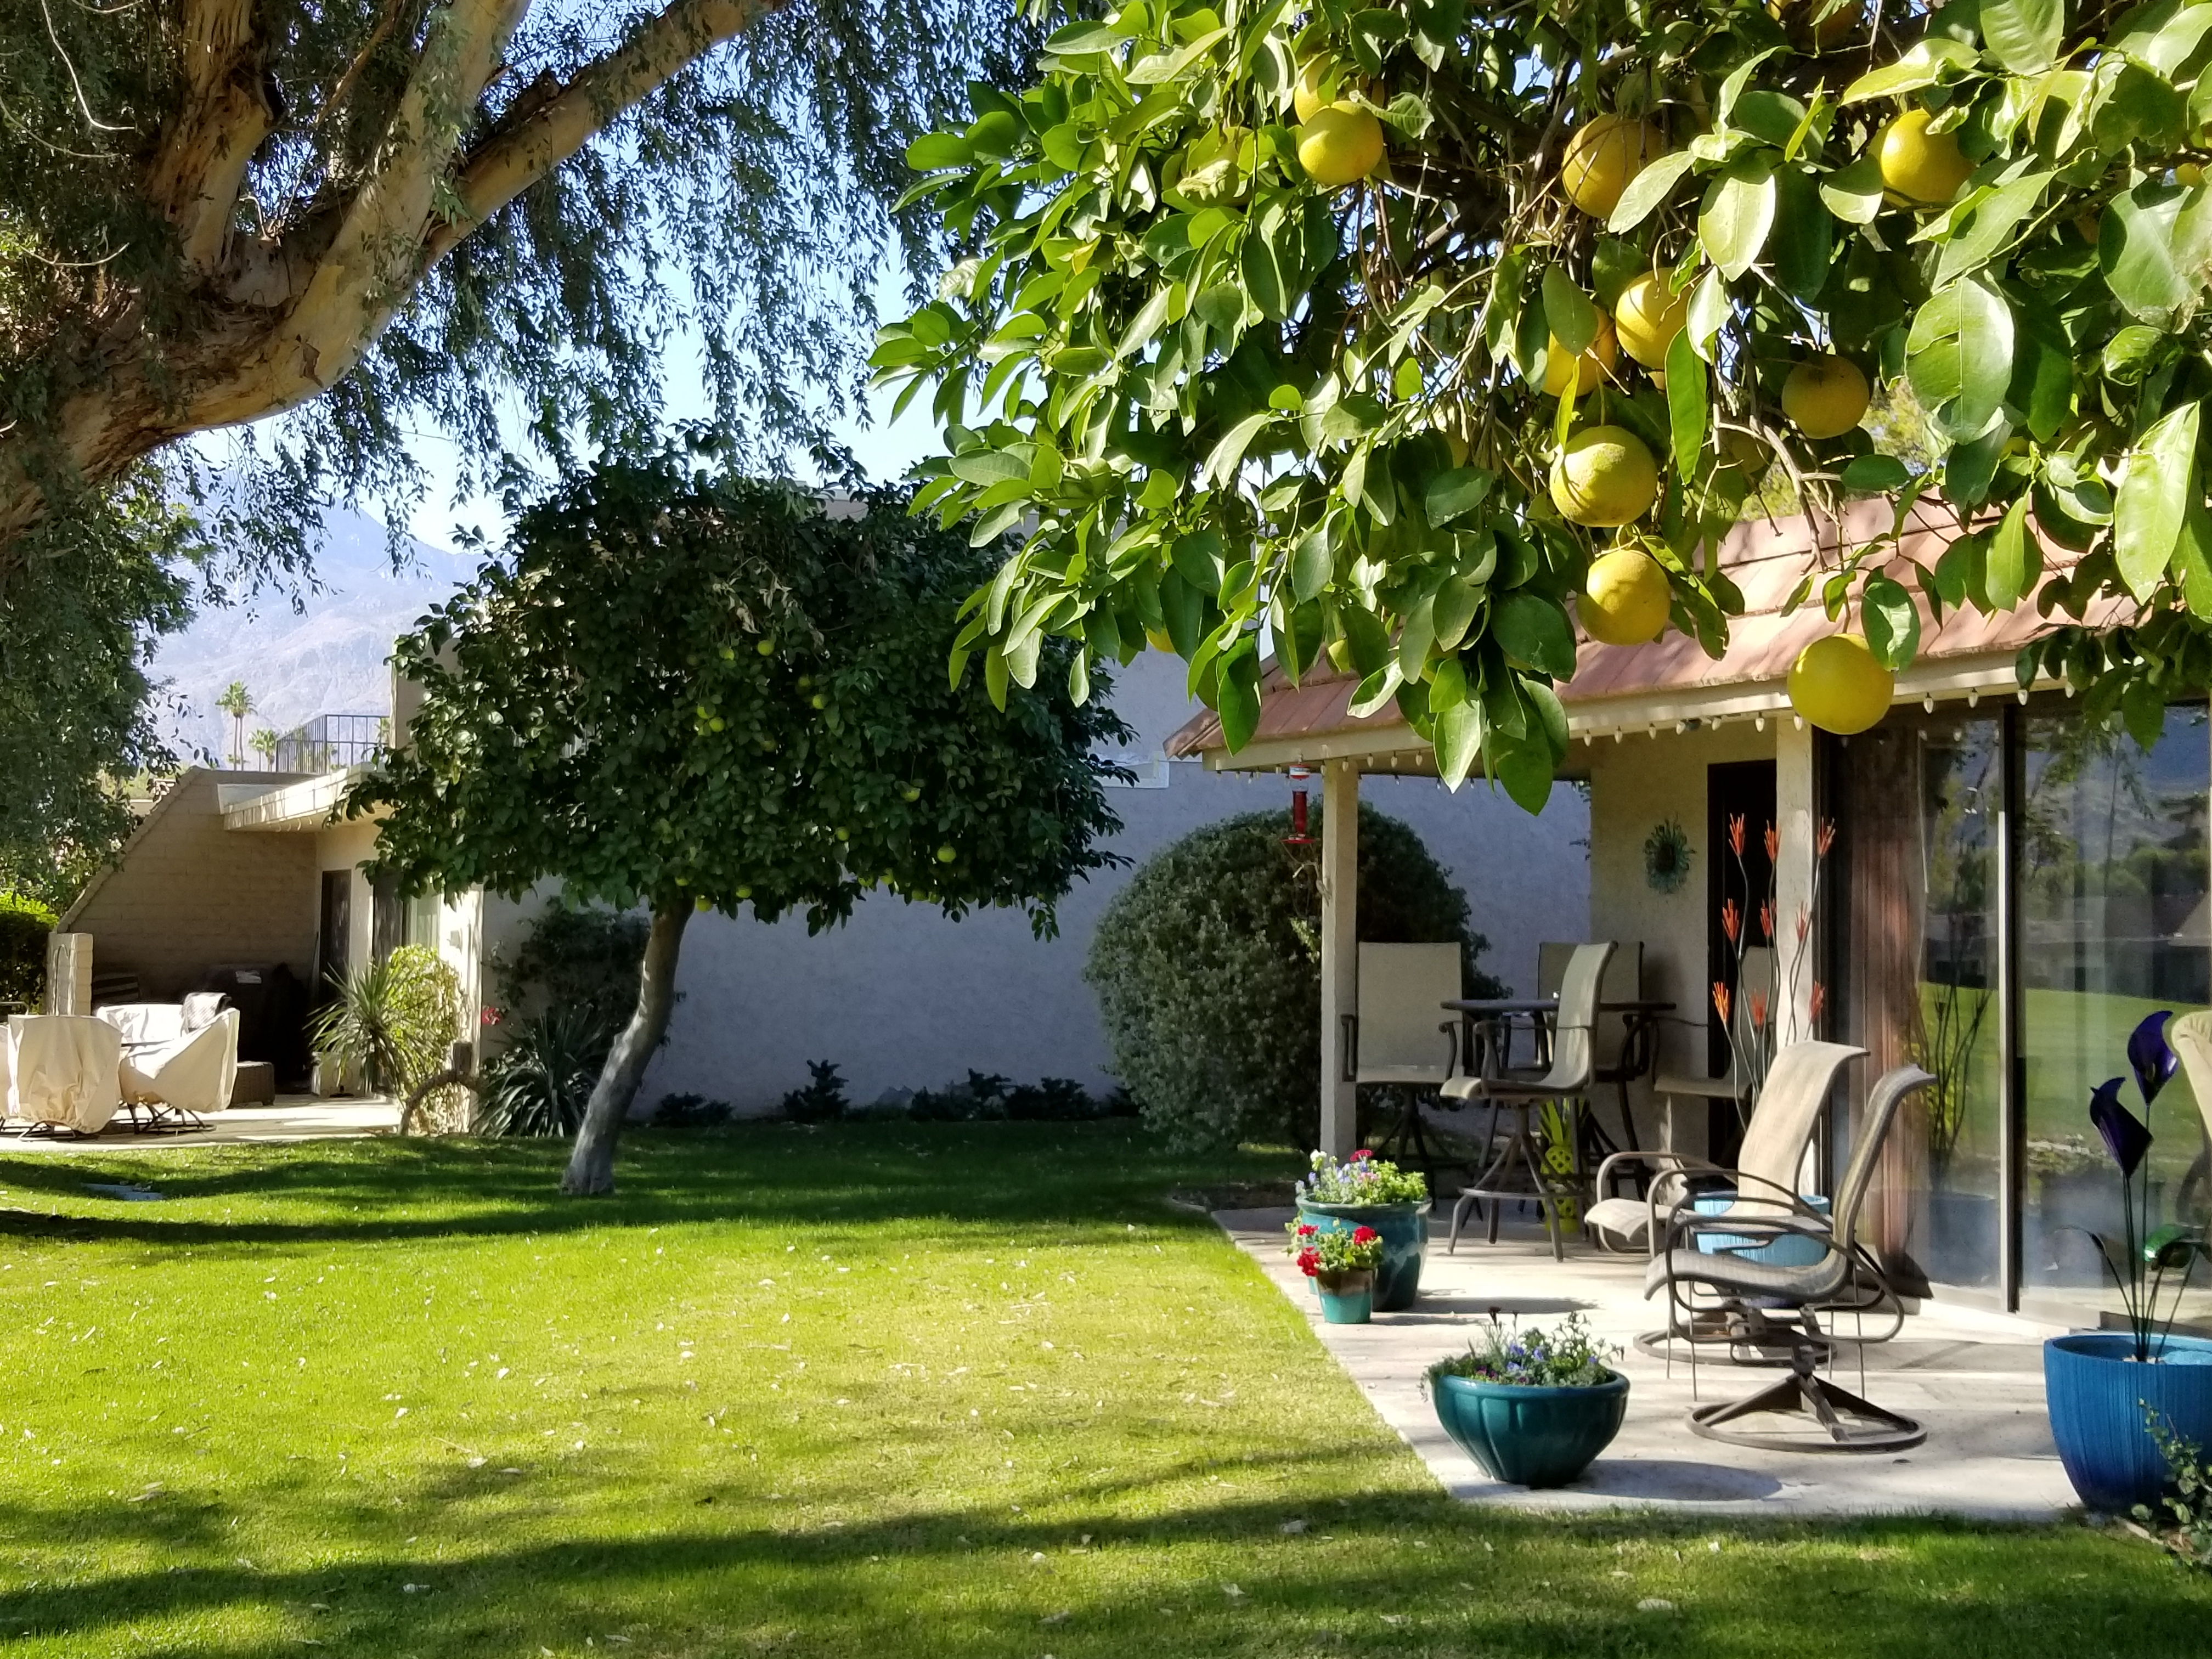 Patio and Mature Fruit Trees